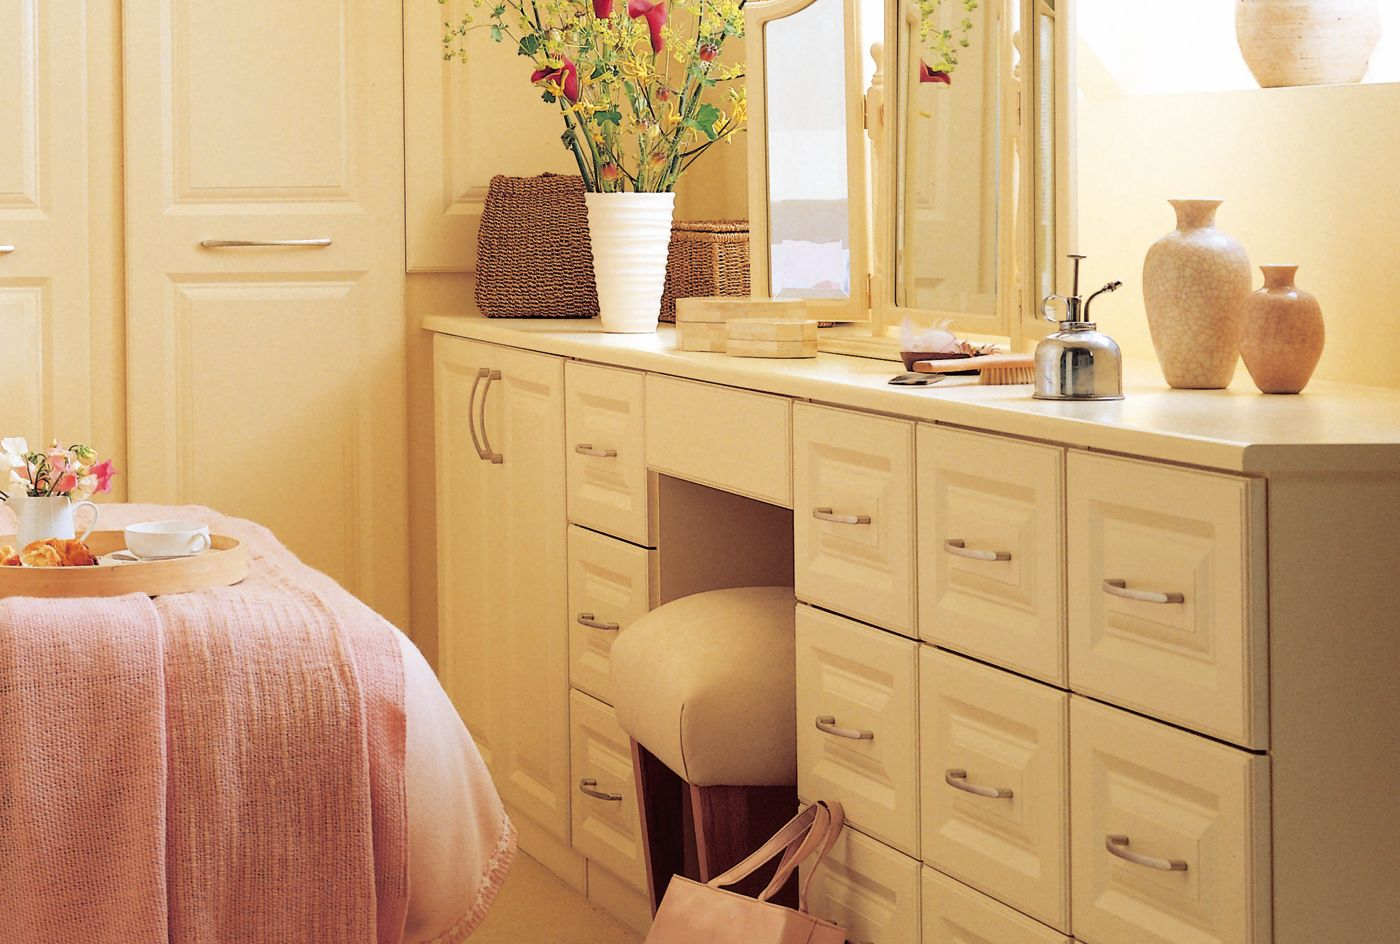 Dressing Table Designs For Master Bedroom The Sherbourne Fitted Bedroom Design Includes This